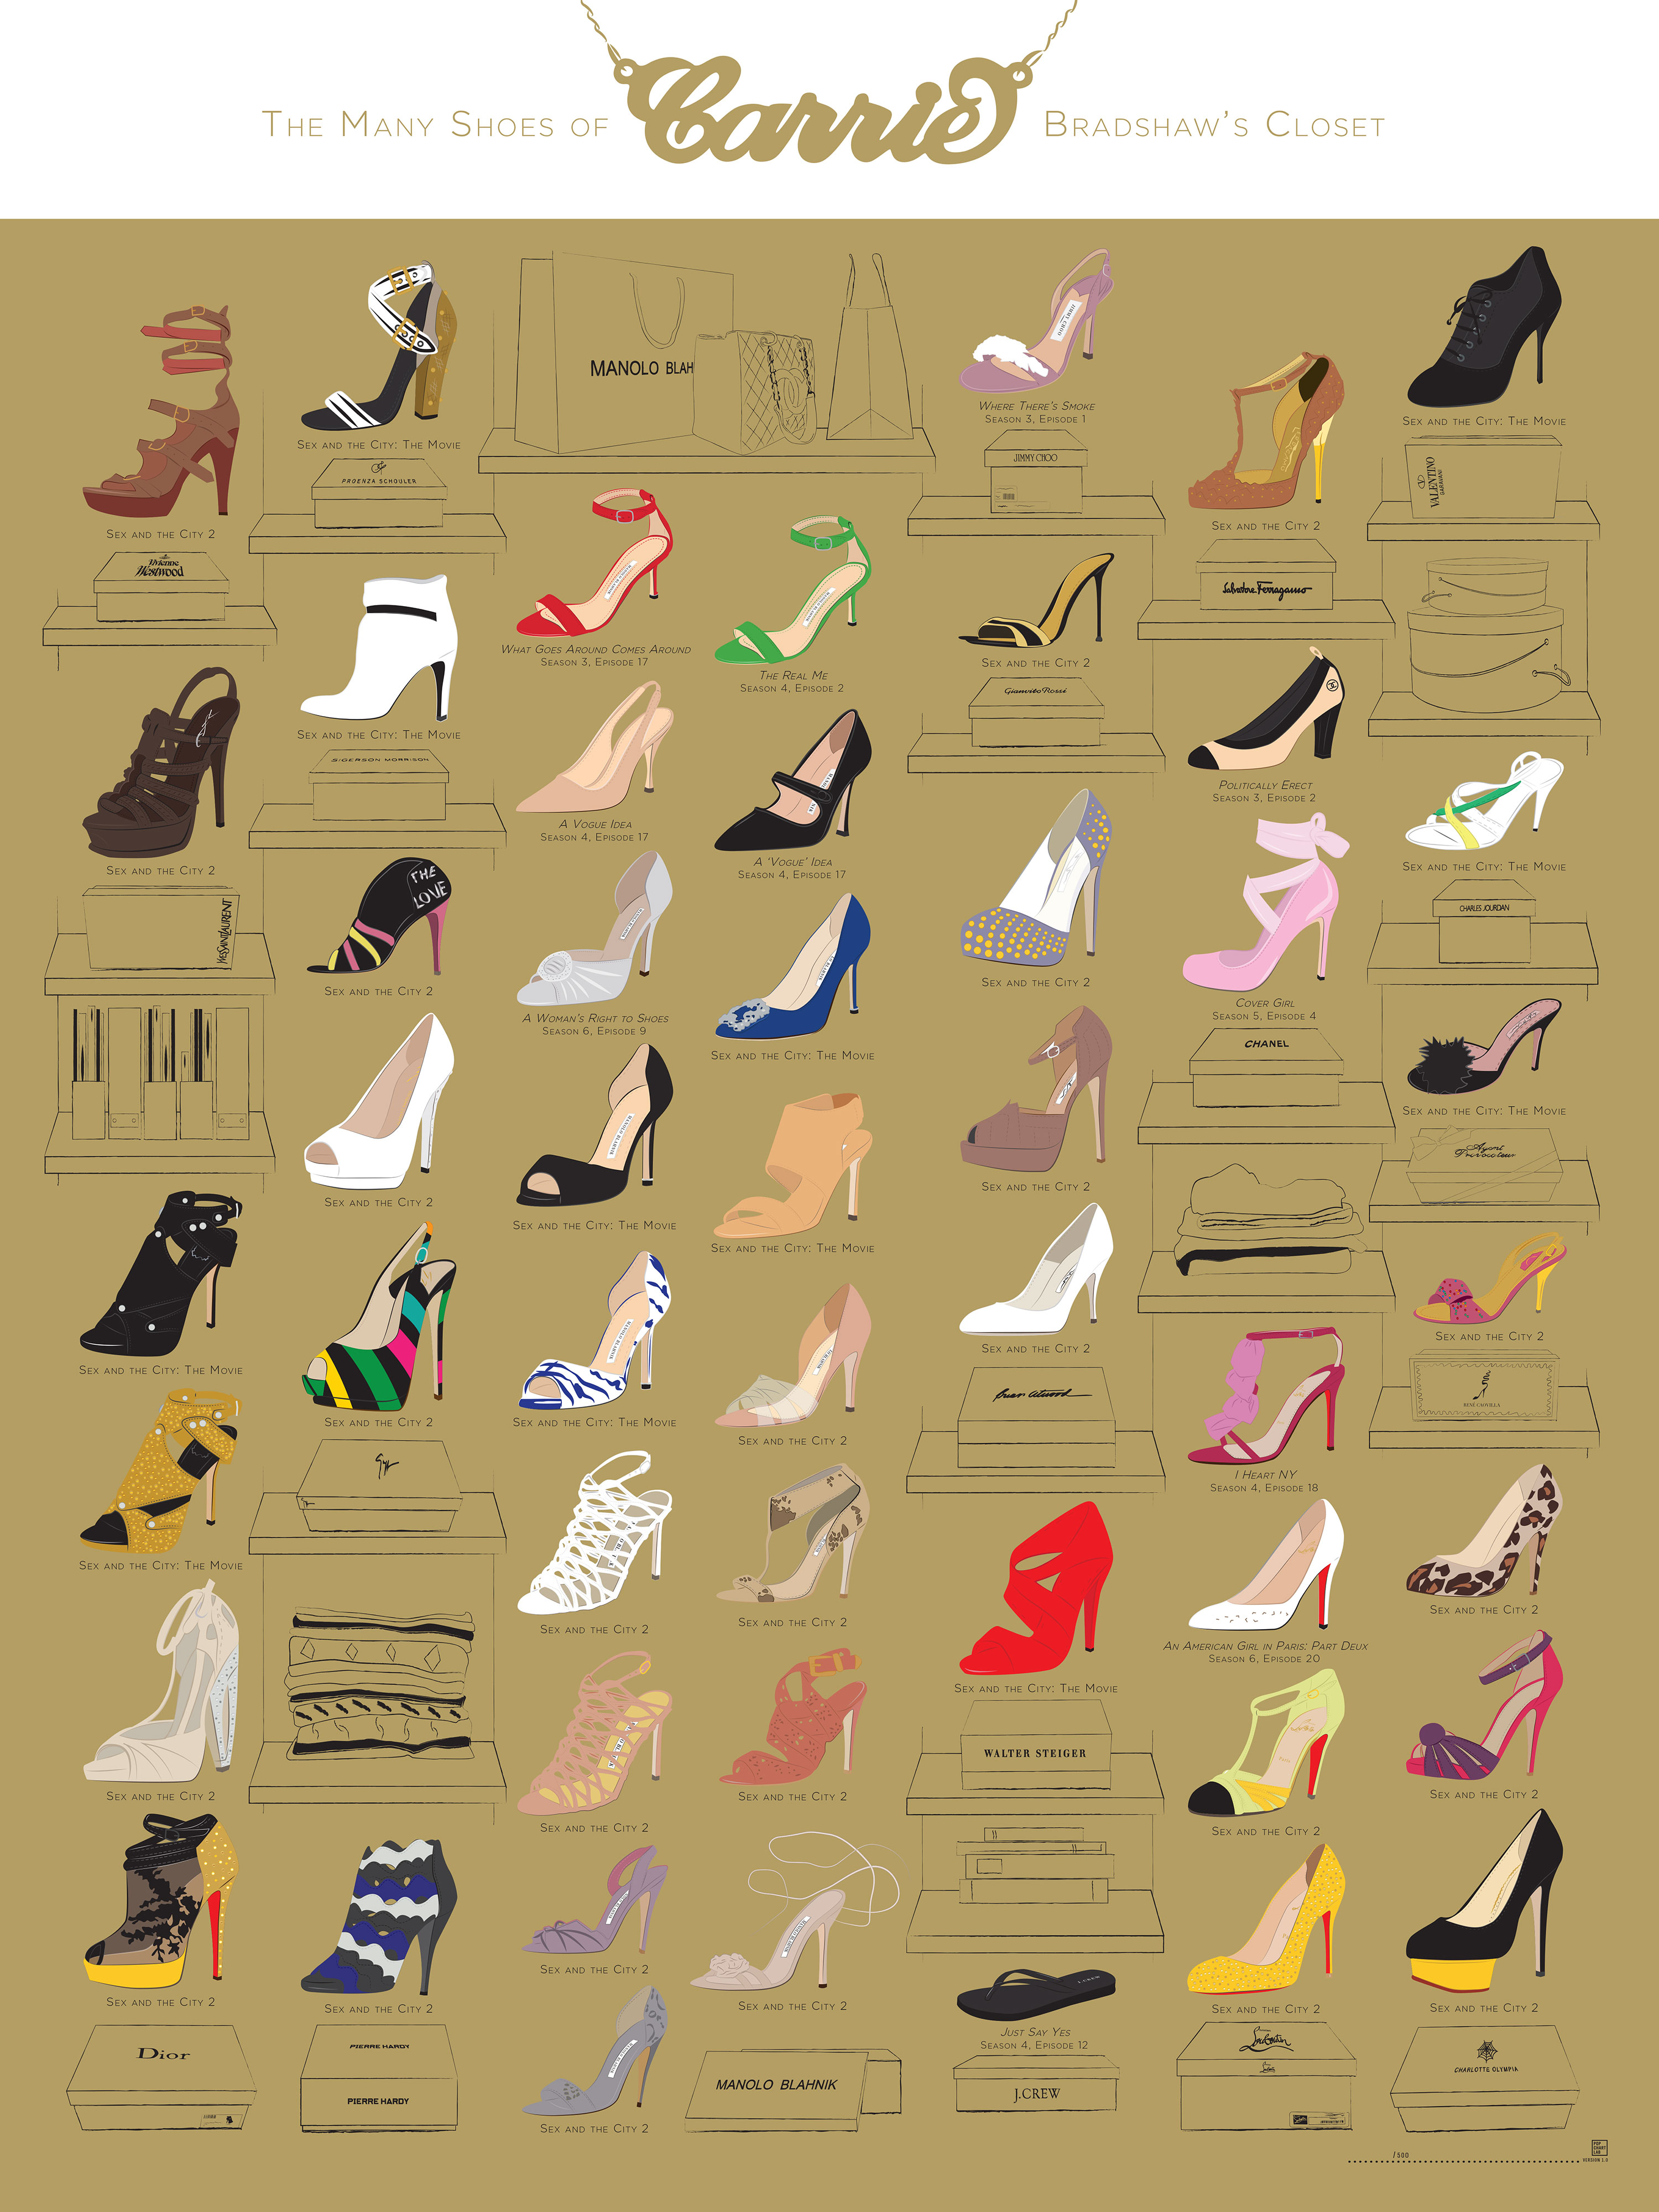 carrie bradshaw shoes The Many Shoes of Carrie Bradshaw: An Infographic You Can Buy